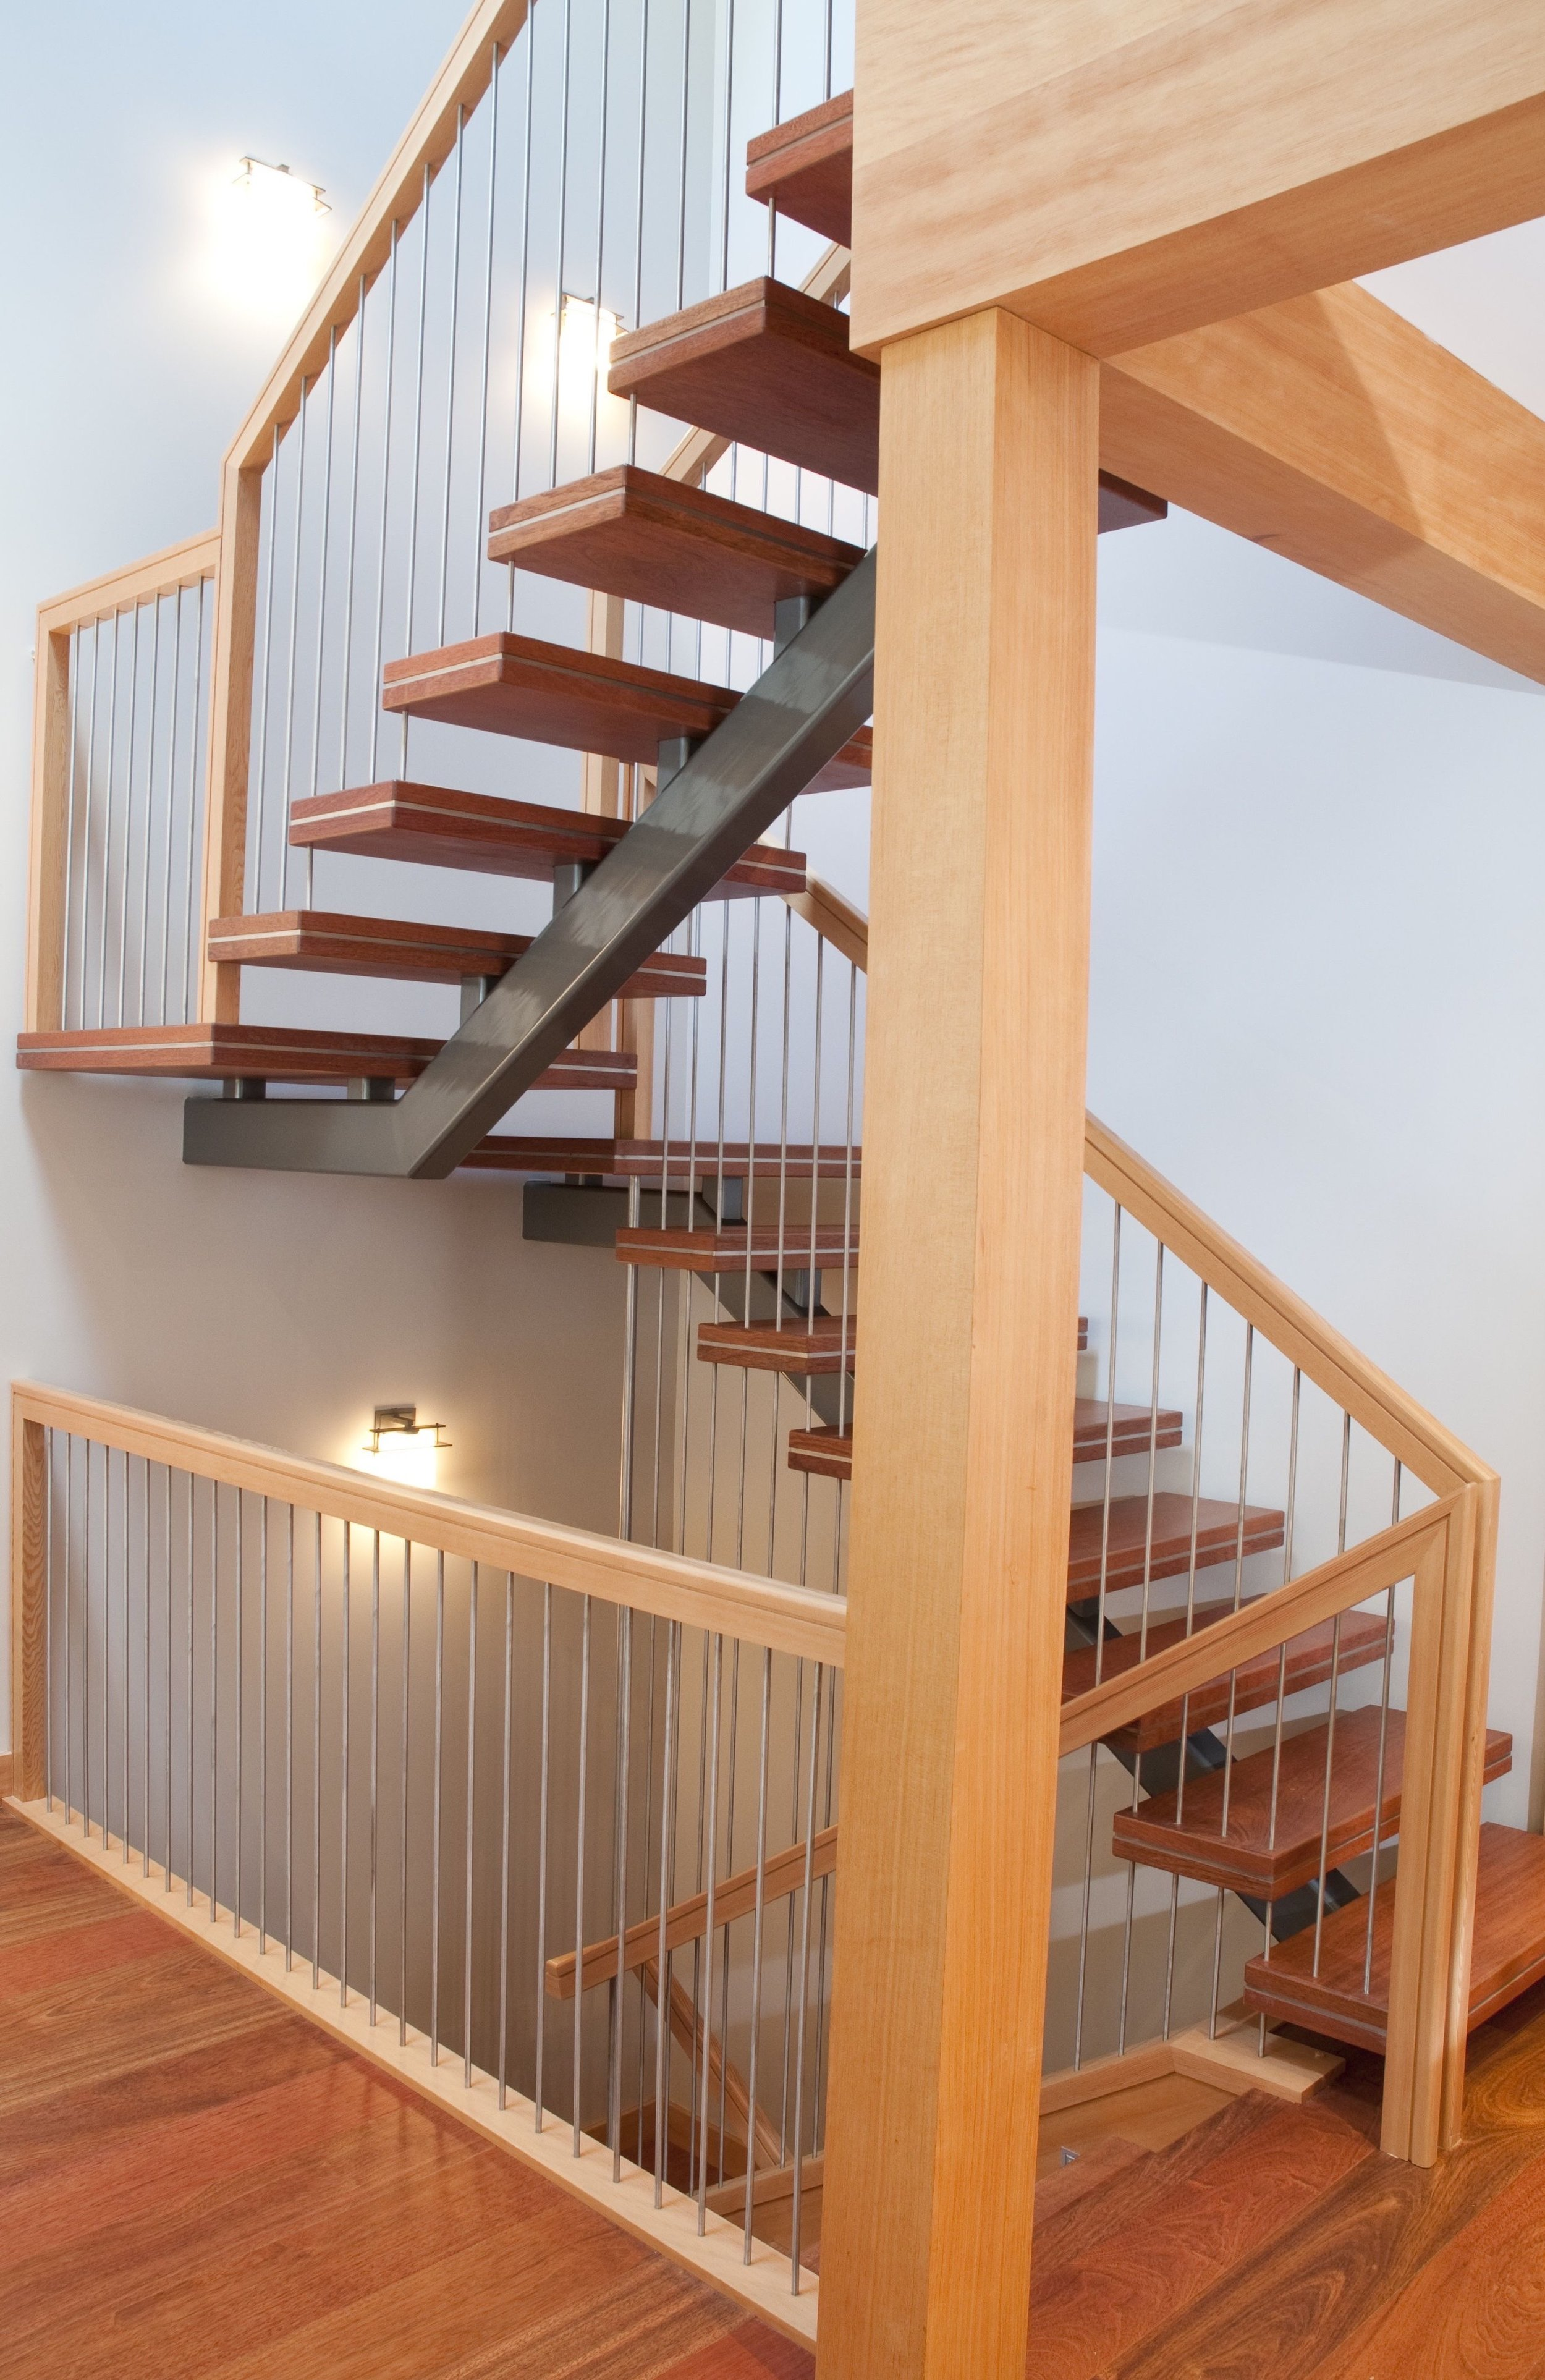 Mono Stair With Steel And Wood.jpg